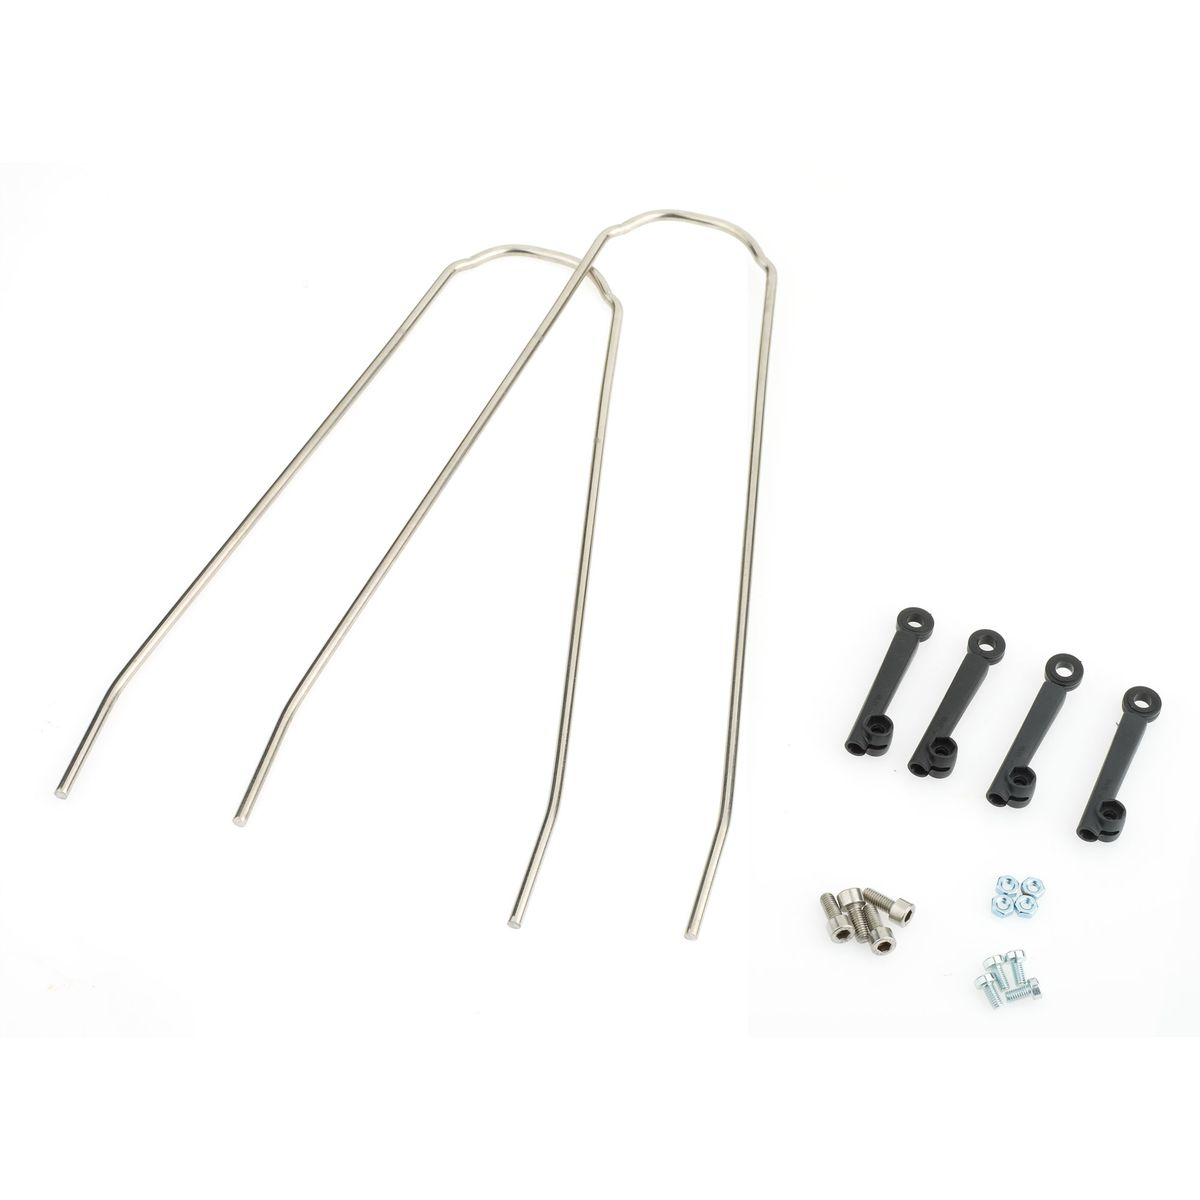 SKS strut kit for VELO mudguards